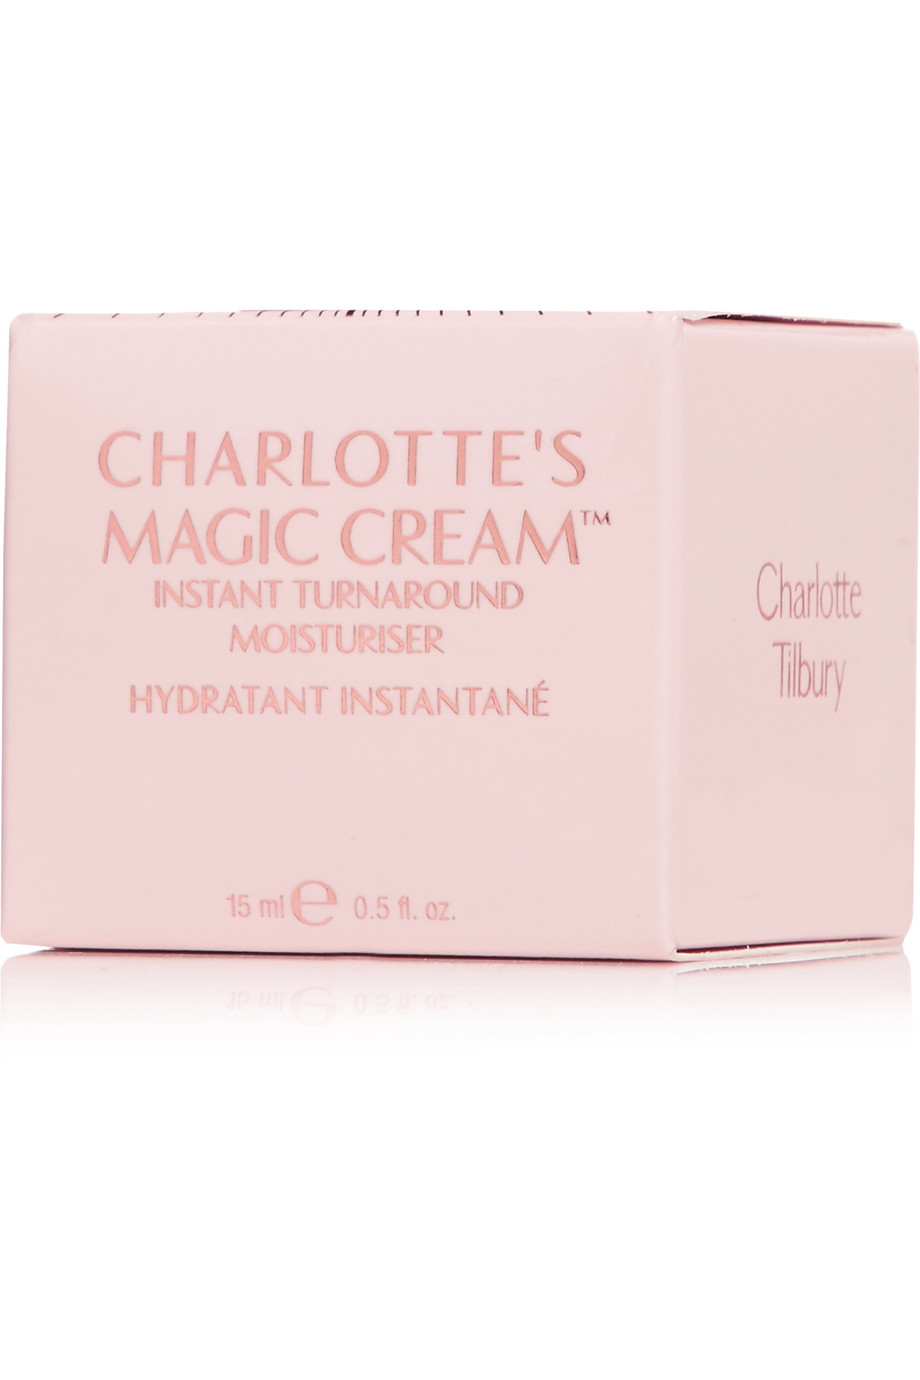 Charlotte Tilbury Charlotte's Magic Cream Moisturizer, 15ml